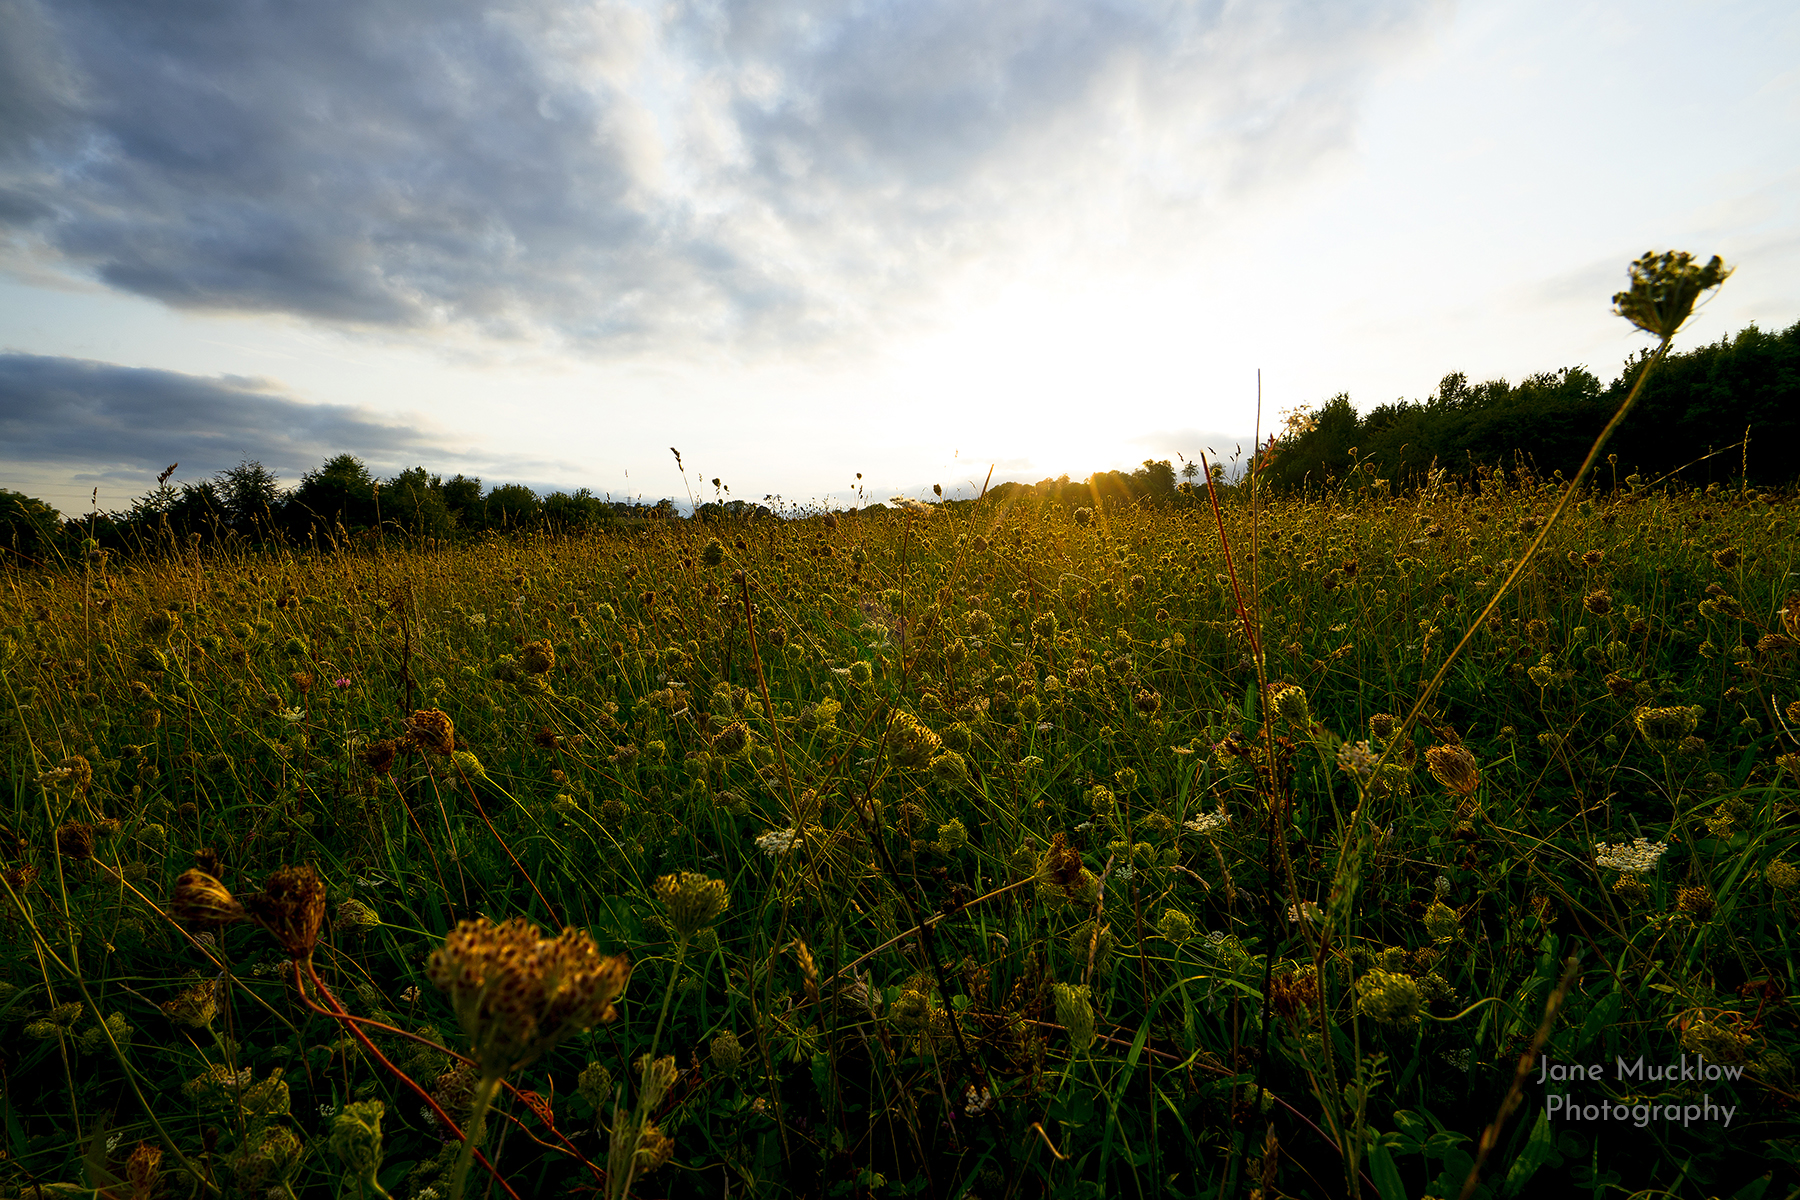 Wildflowers at Lullingstone Country Park, Autumn afternoon sun, photo by Jane Mucklow